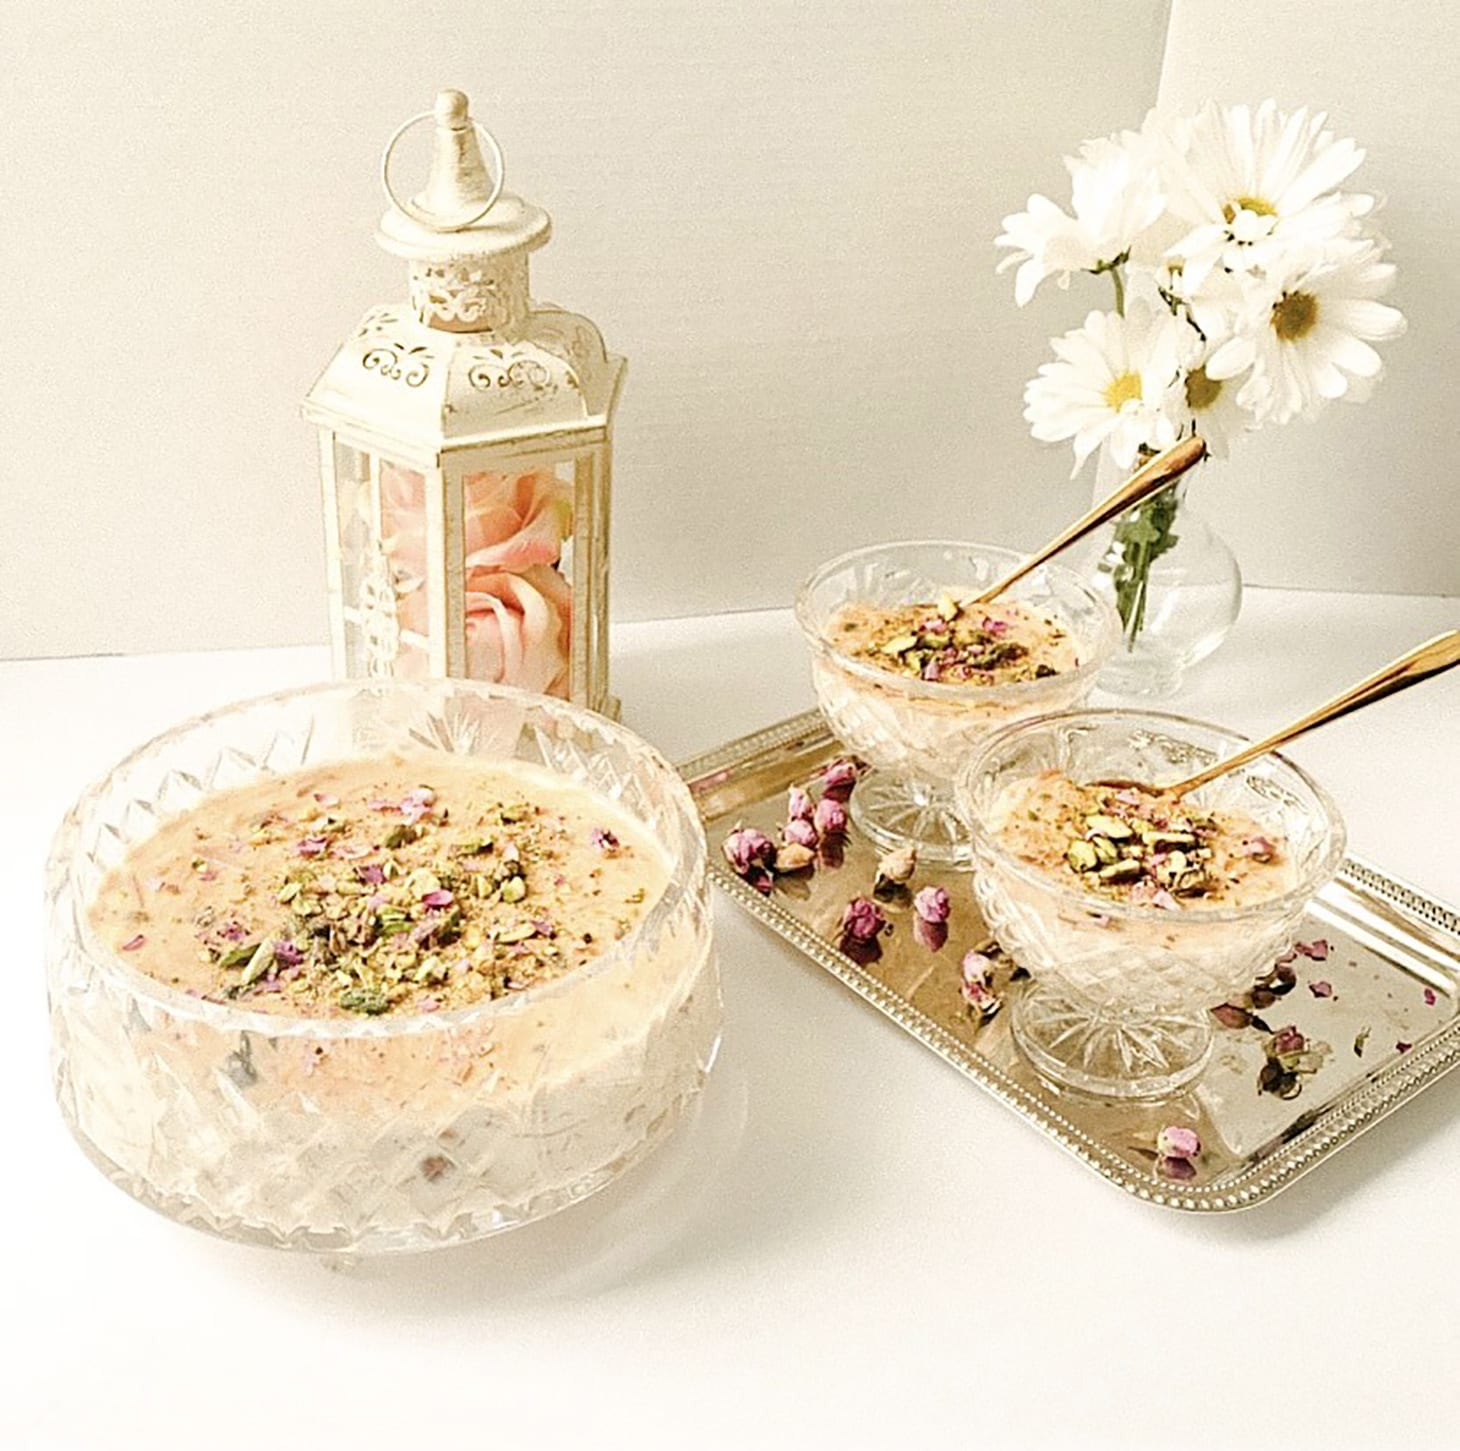 Eid Day food in elegant serving dishes.